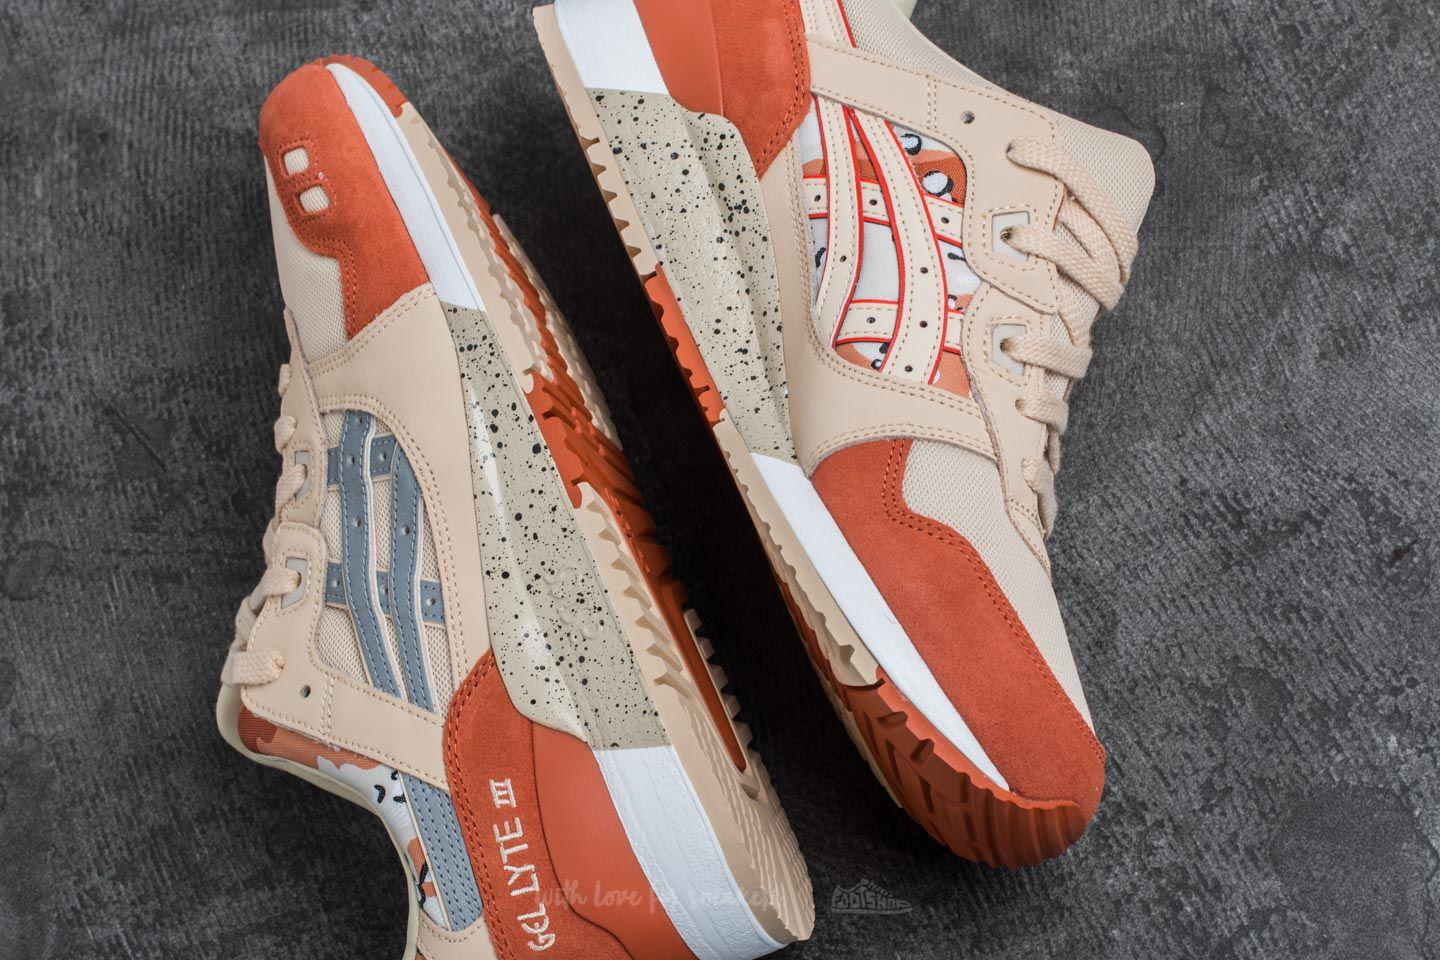 reputable site 9fa17 7ee99 Asics Multicolor Gel-lyte Iii Marzipan/ Silver for men